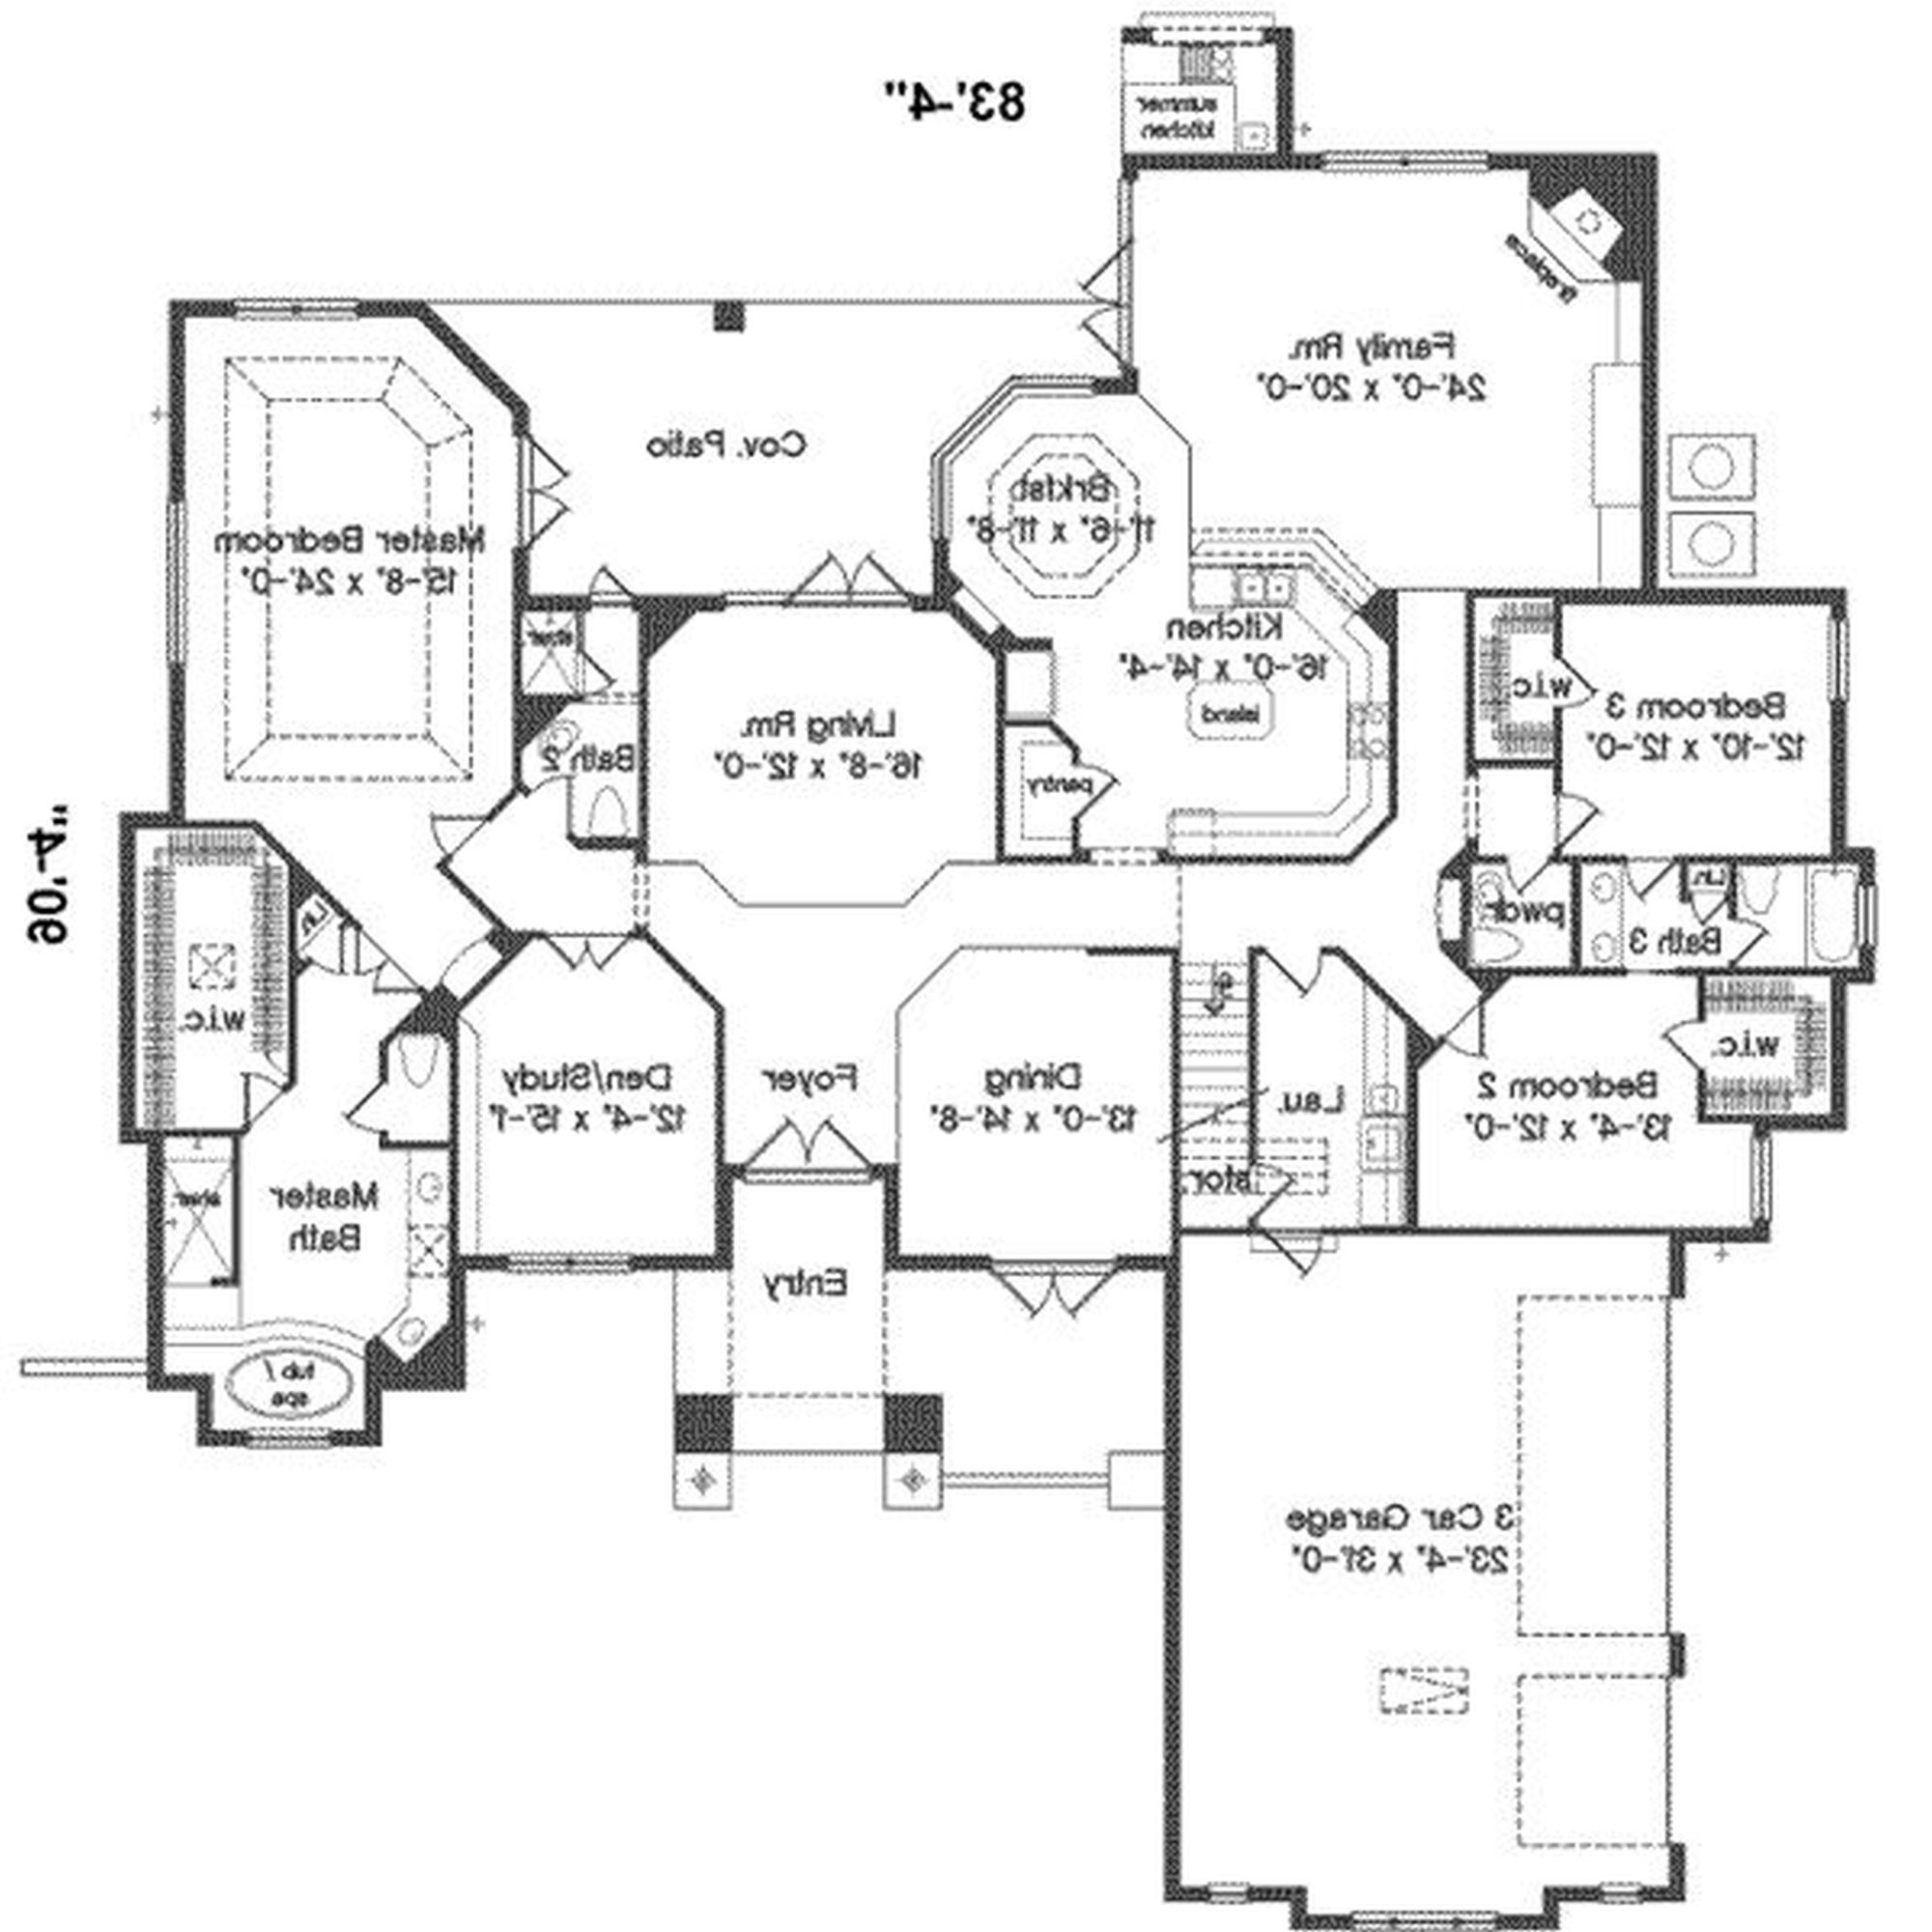 hight resolution of 5000x5000 floor plans drawing steeple analysis template kit car wiring diagram